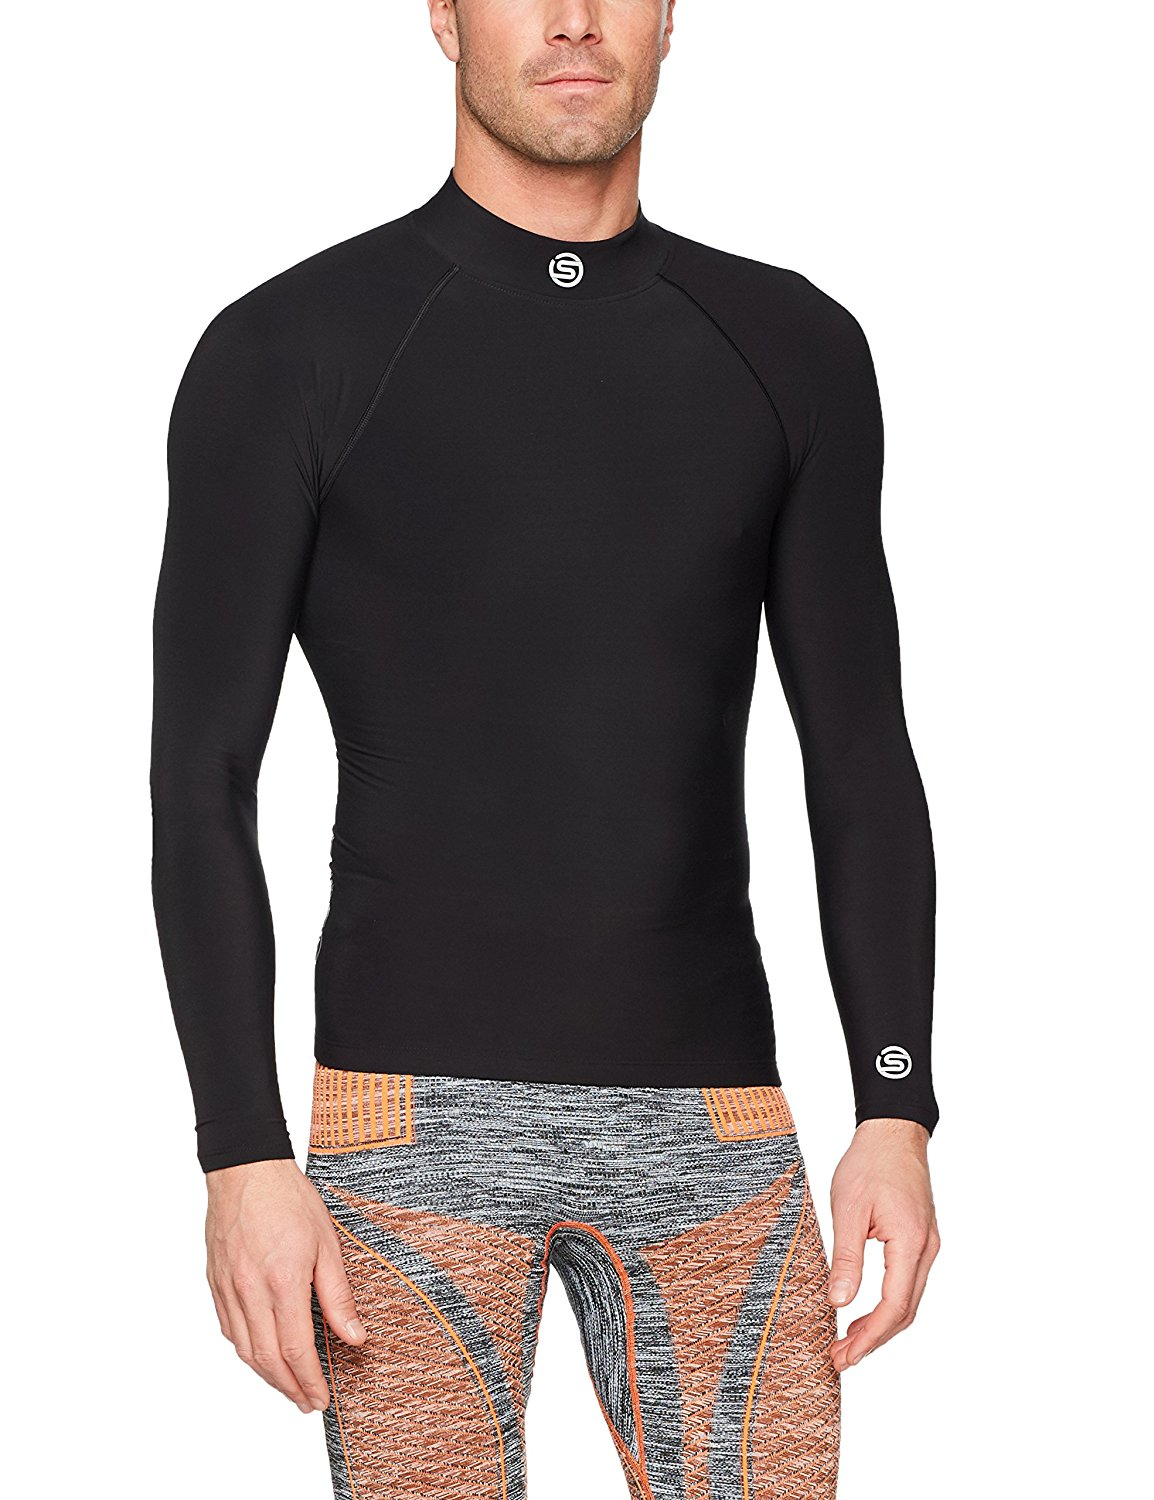 4c8df456ccfdd Get Quotations · SKINS Men s Dynamic Team Thermal L S Mock Neck Compression  Top